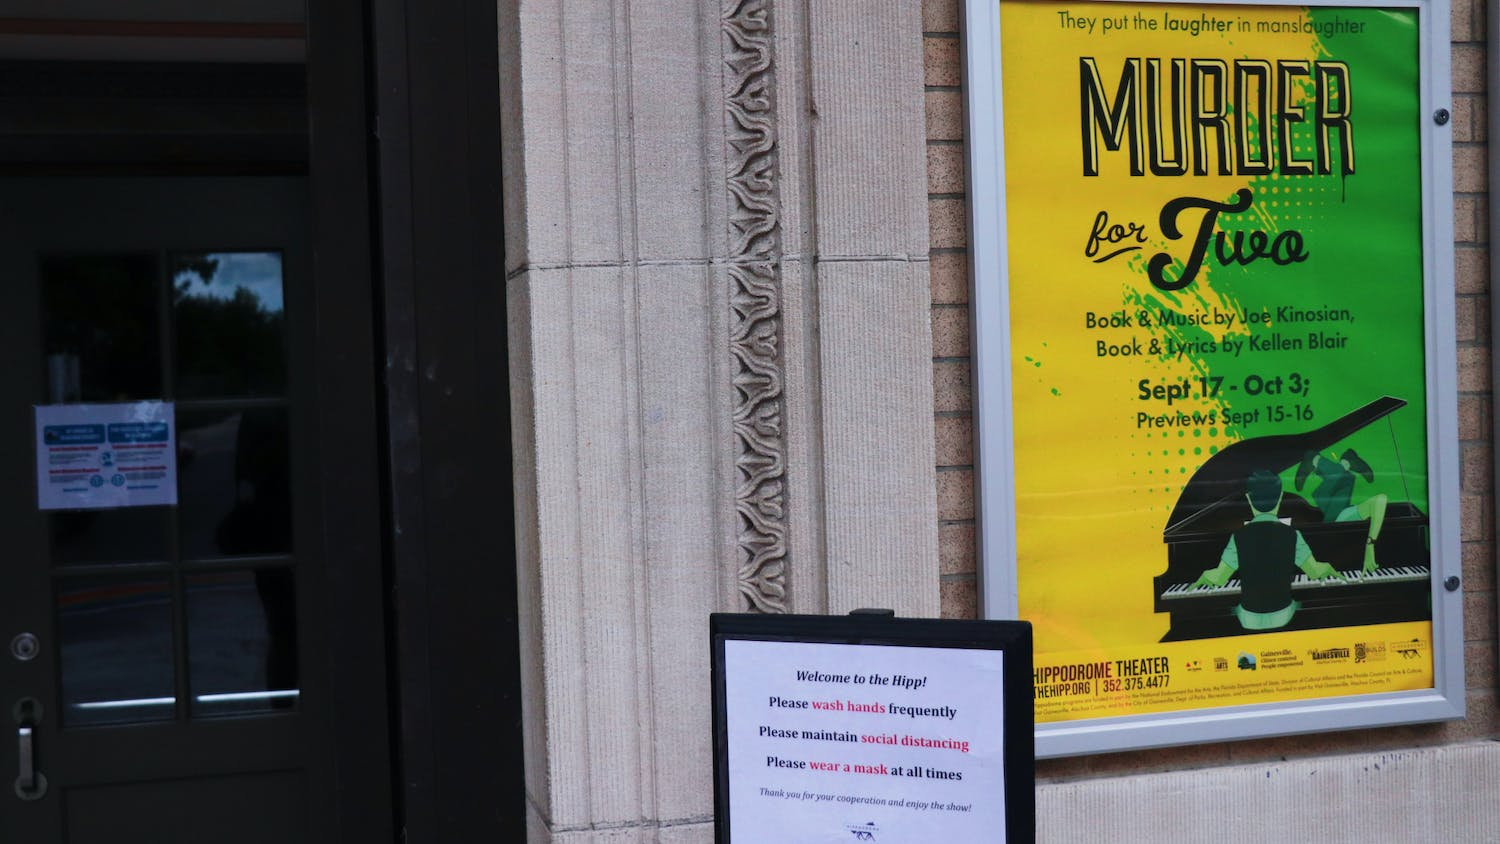 """The Hippodrome Theatre, located at 25 SE 2nd Place, will open its doors on Friday, Sept. 17, 2021 for """"Murder For Two,"""" one of the first in-person performances since the beginning of the COVID-19 pandemic."""